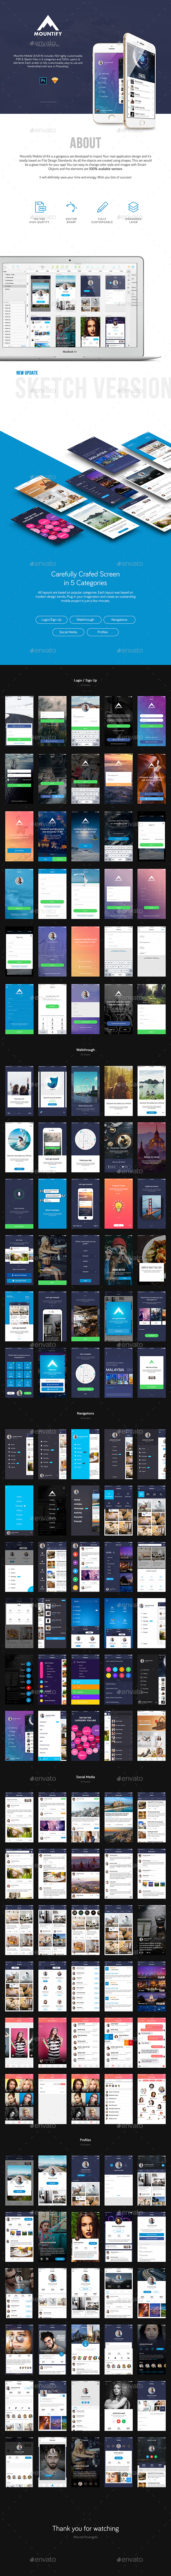 Pone l Mobile App (User Interfaces)